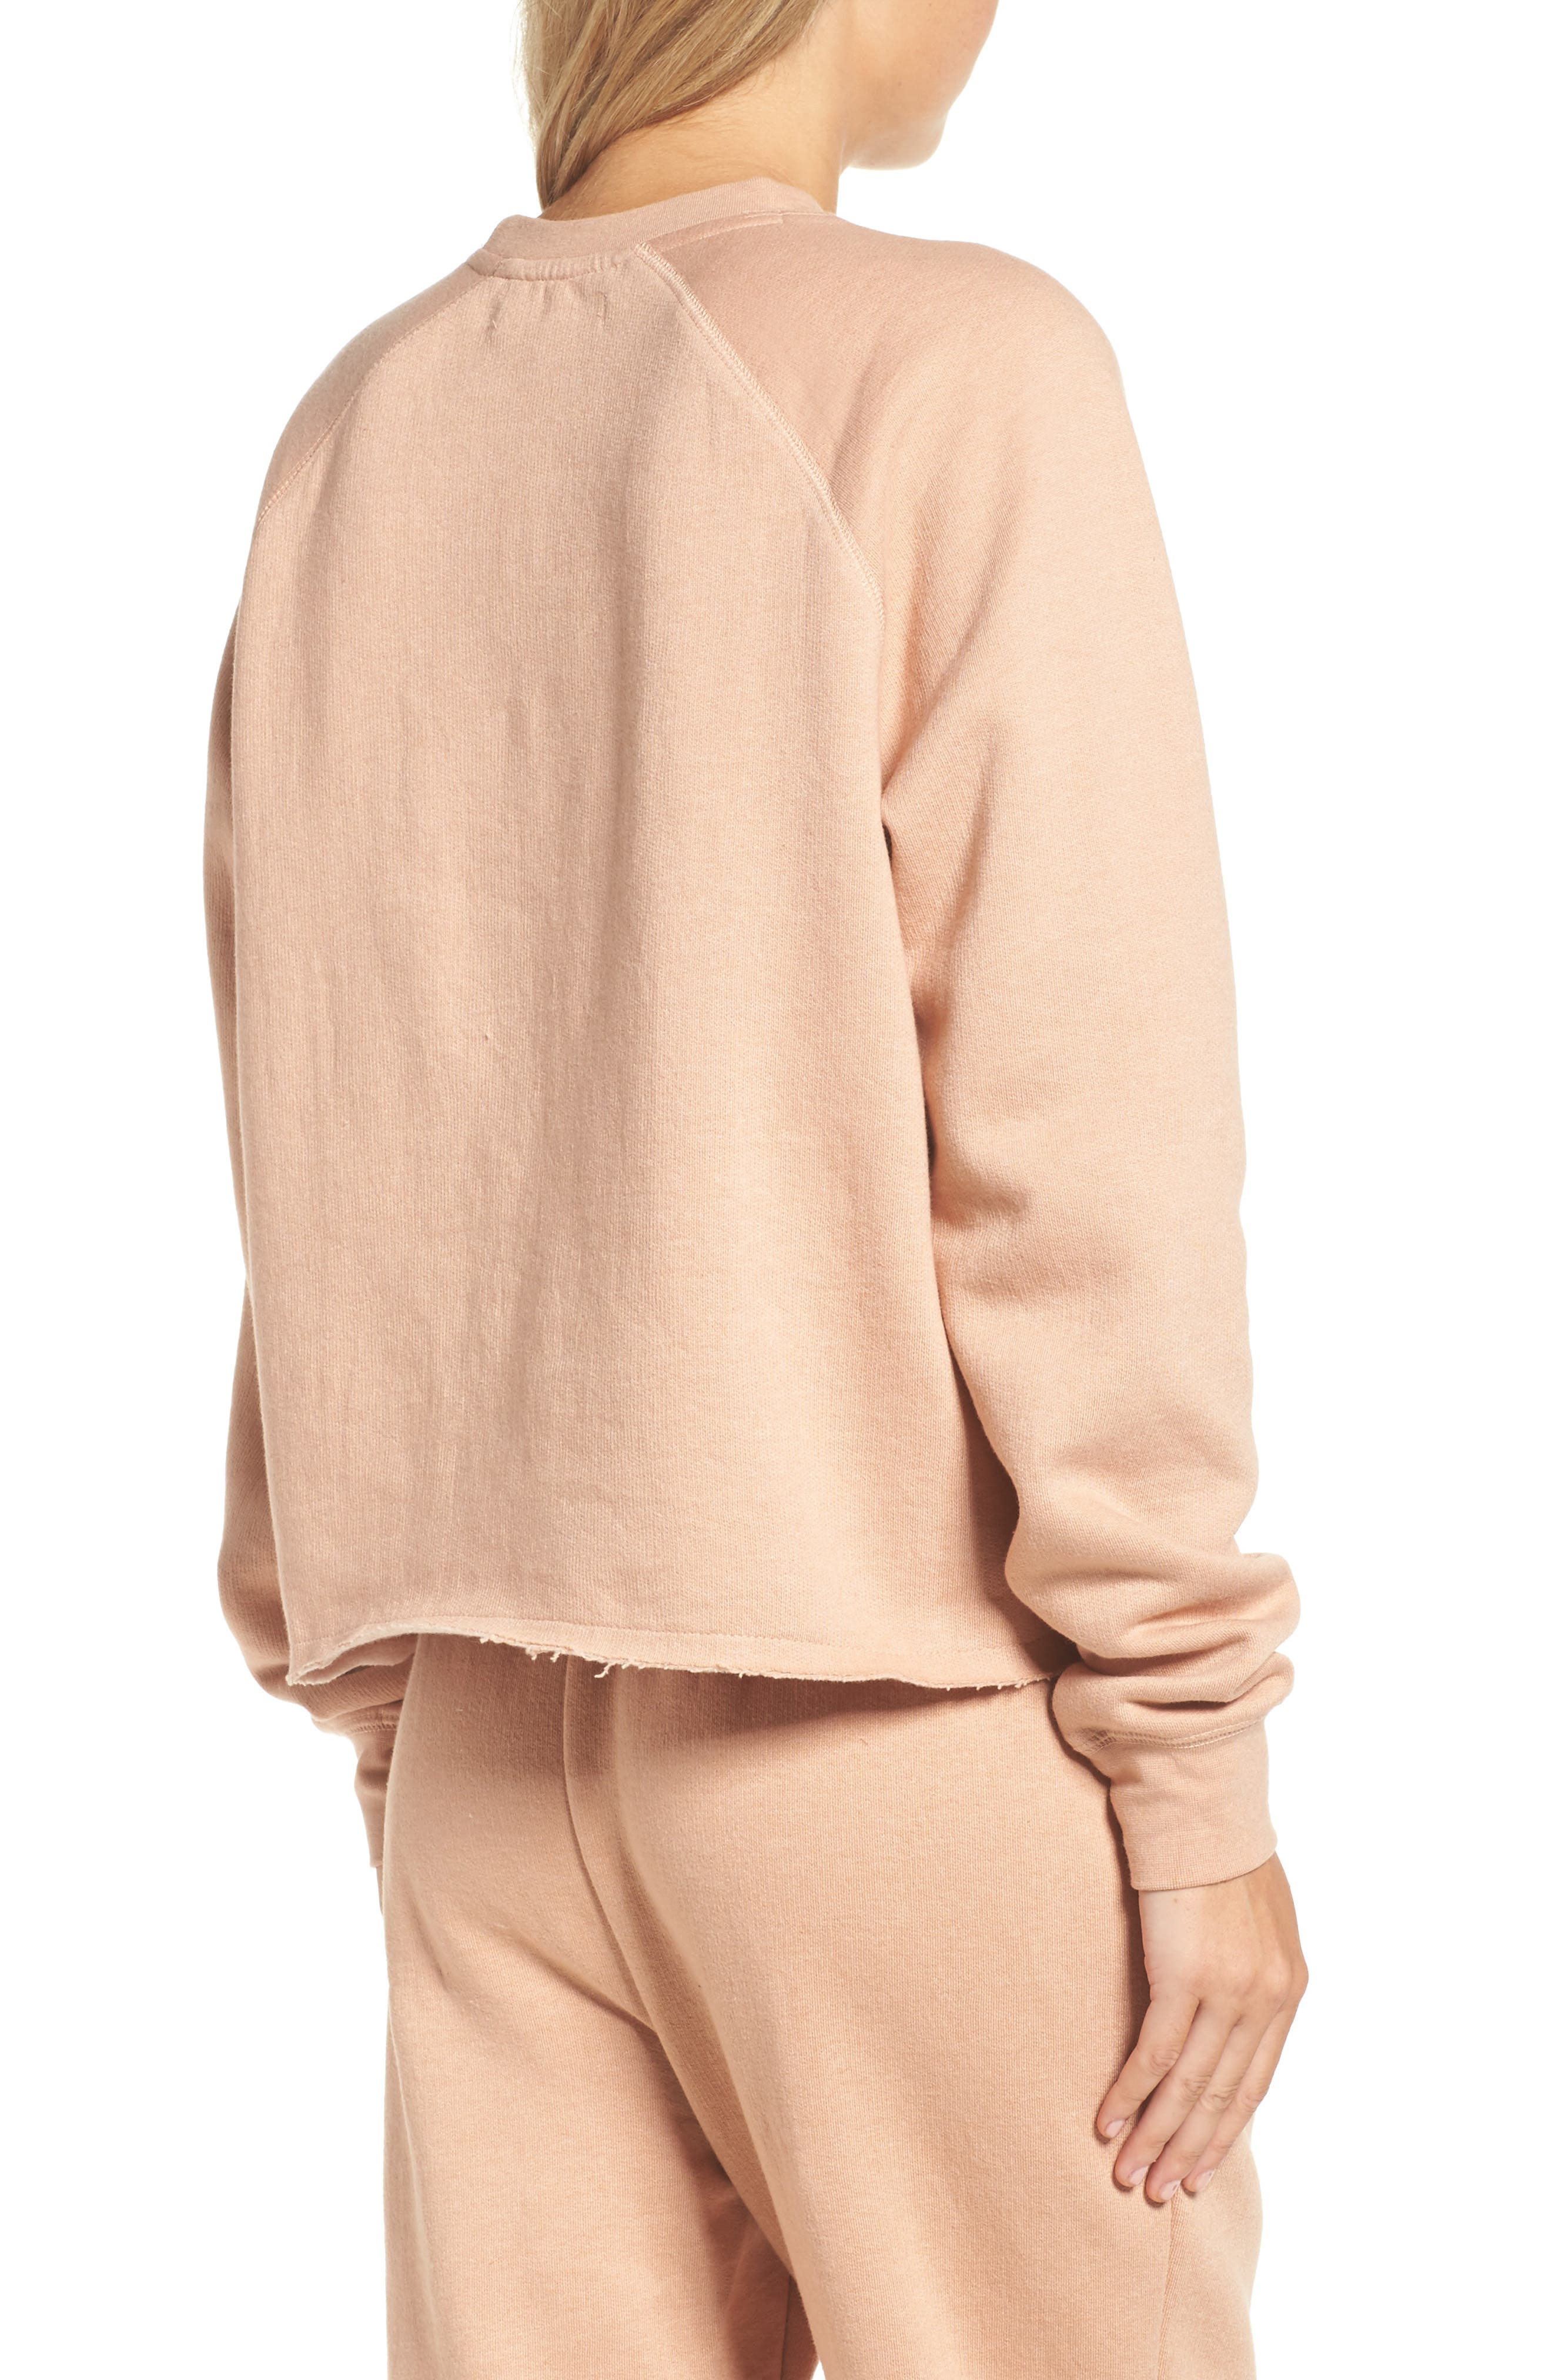 Middle Sister Blonde Sweatshirt,                             Alternate thumbnail 2, color,                             250